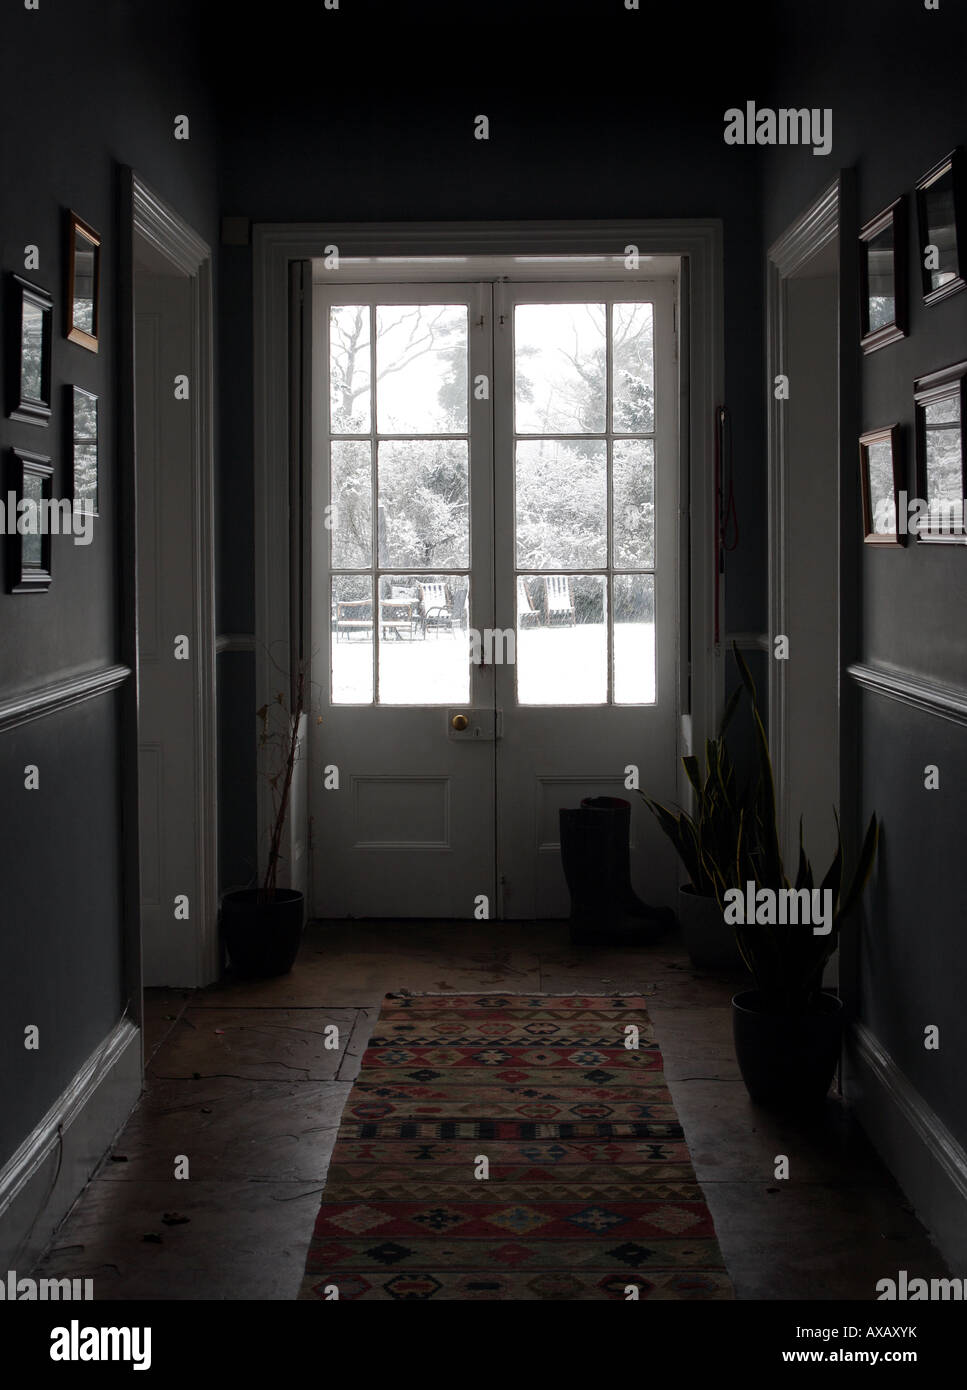 View down Georgian hallway to reveal it is snowing hard outside - Stock Image